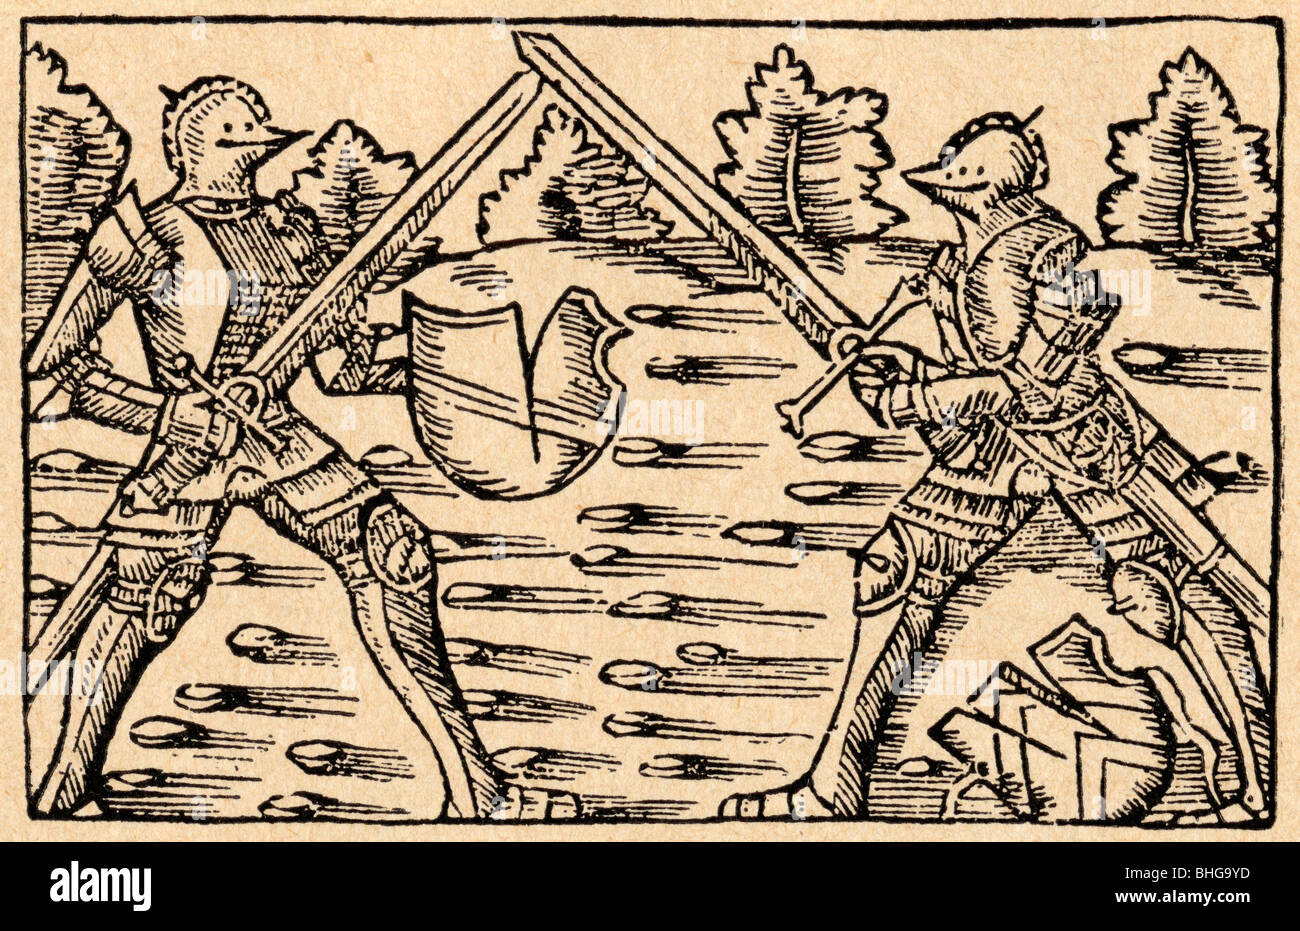 Single combat between knights in full armour. - Stock Image